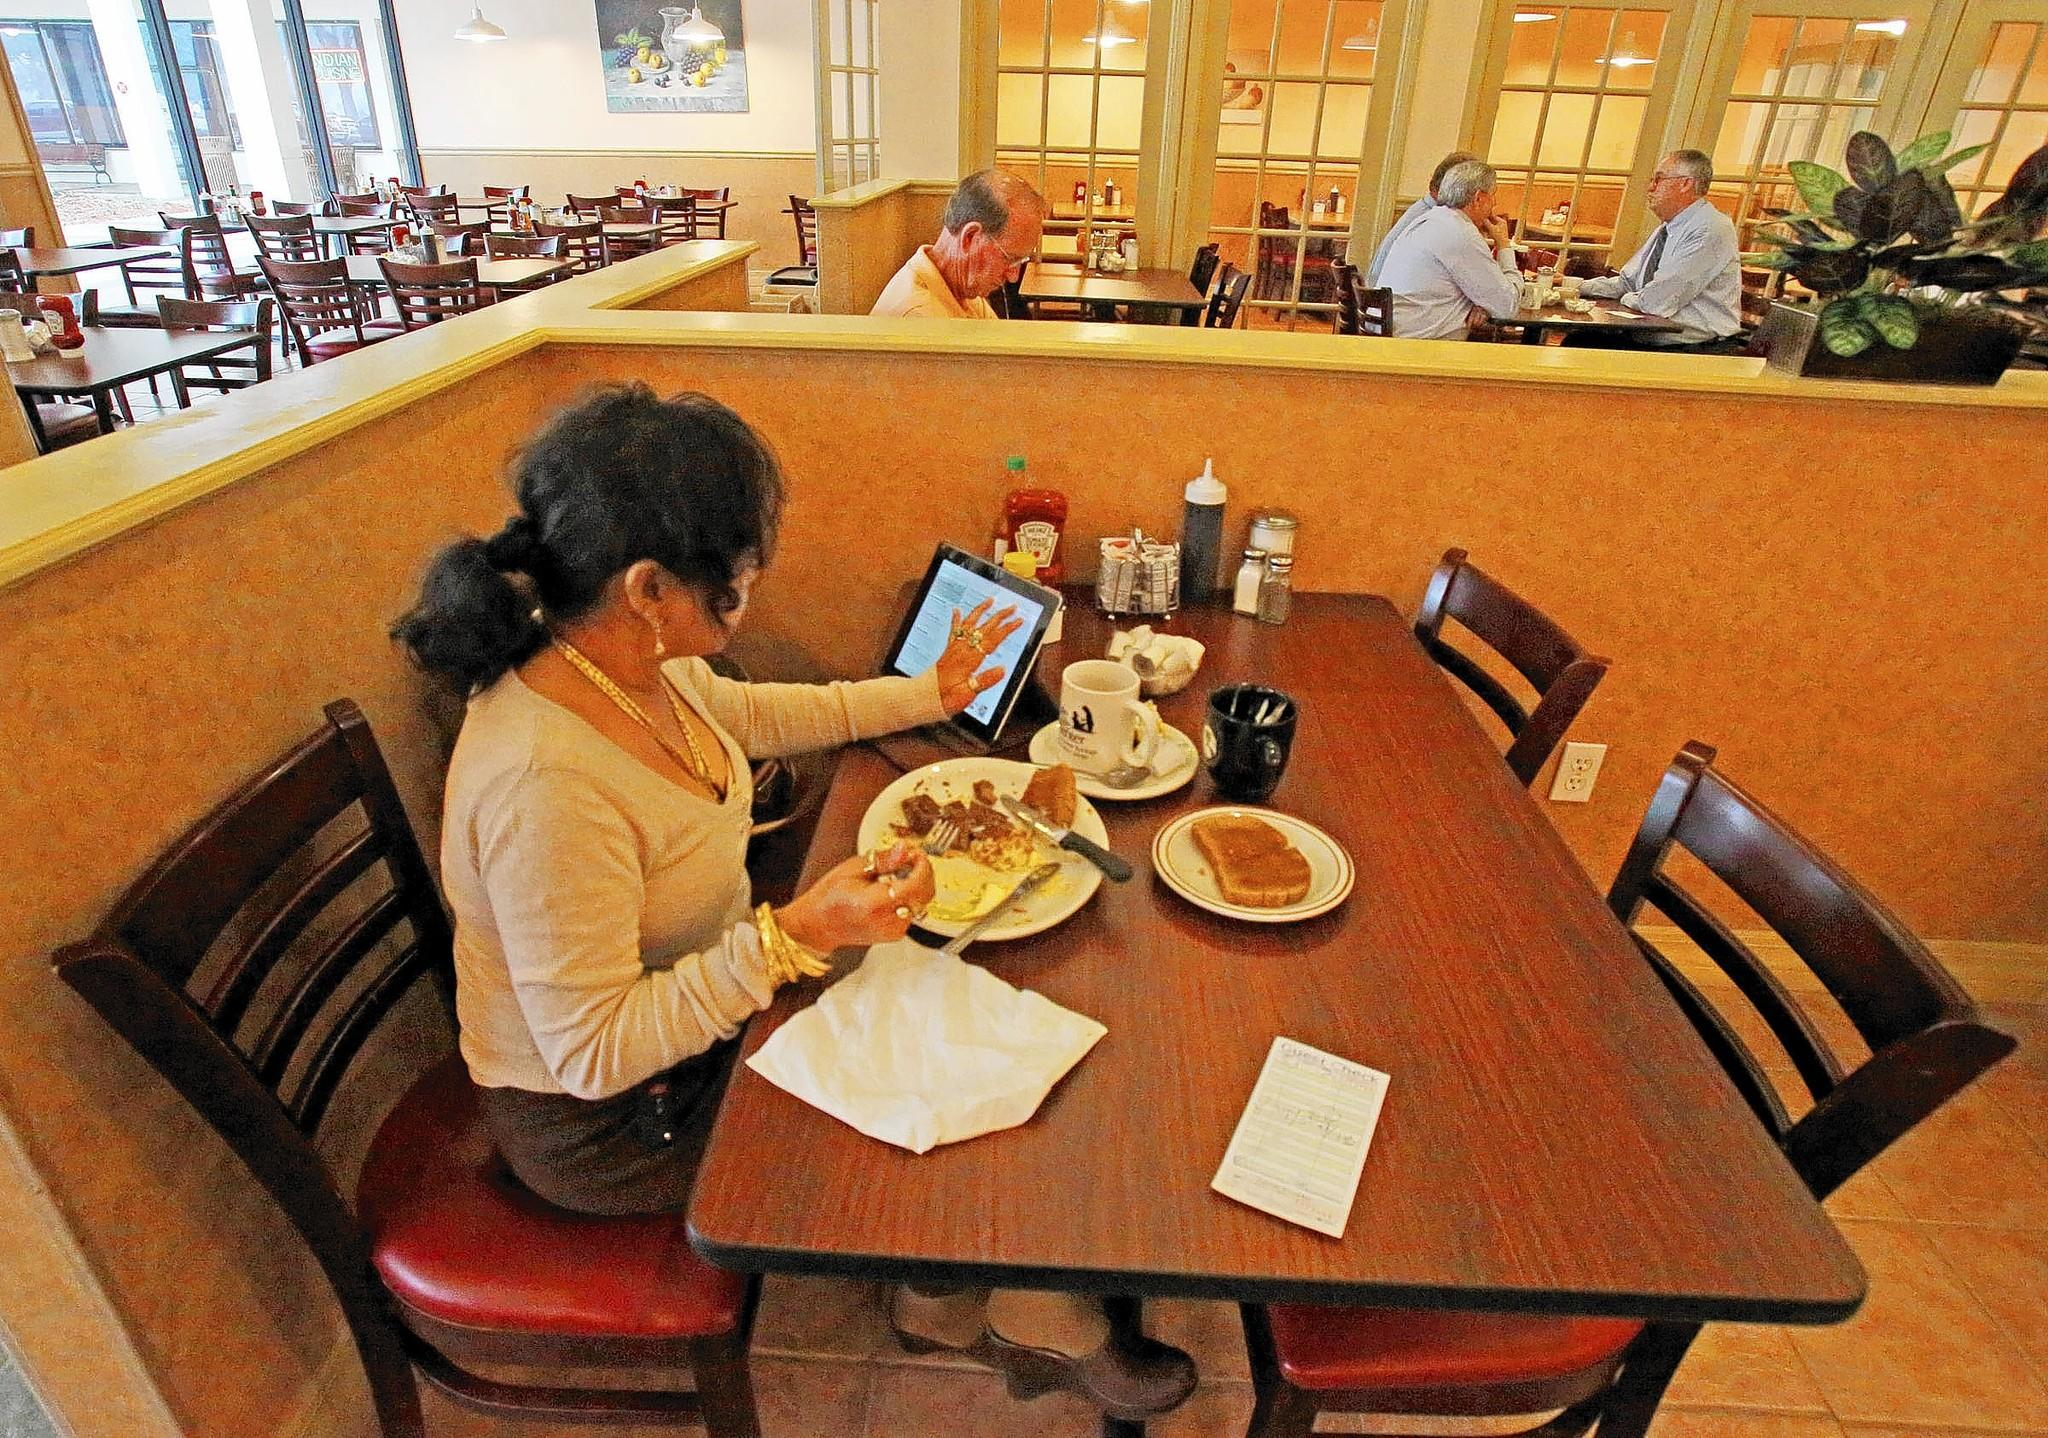 Ninia Higgins of Orlando catches up on email as she eats at The Breakfast Club in Atamonte Springs.